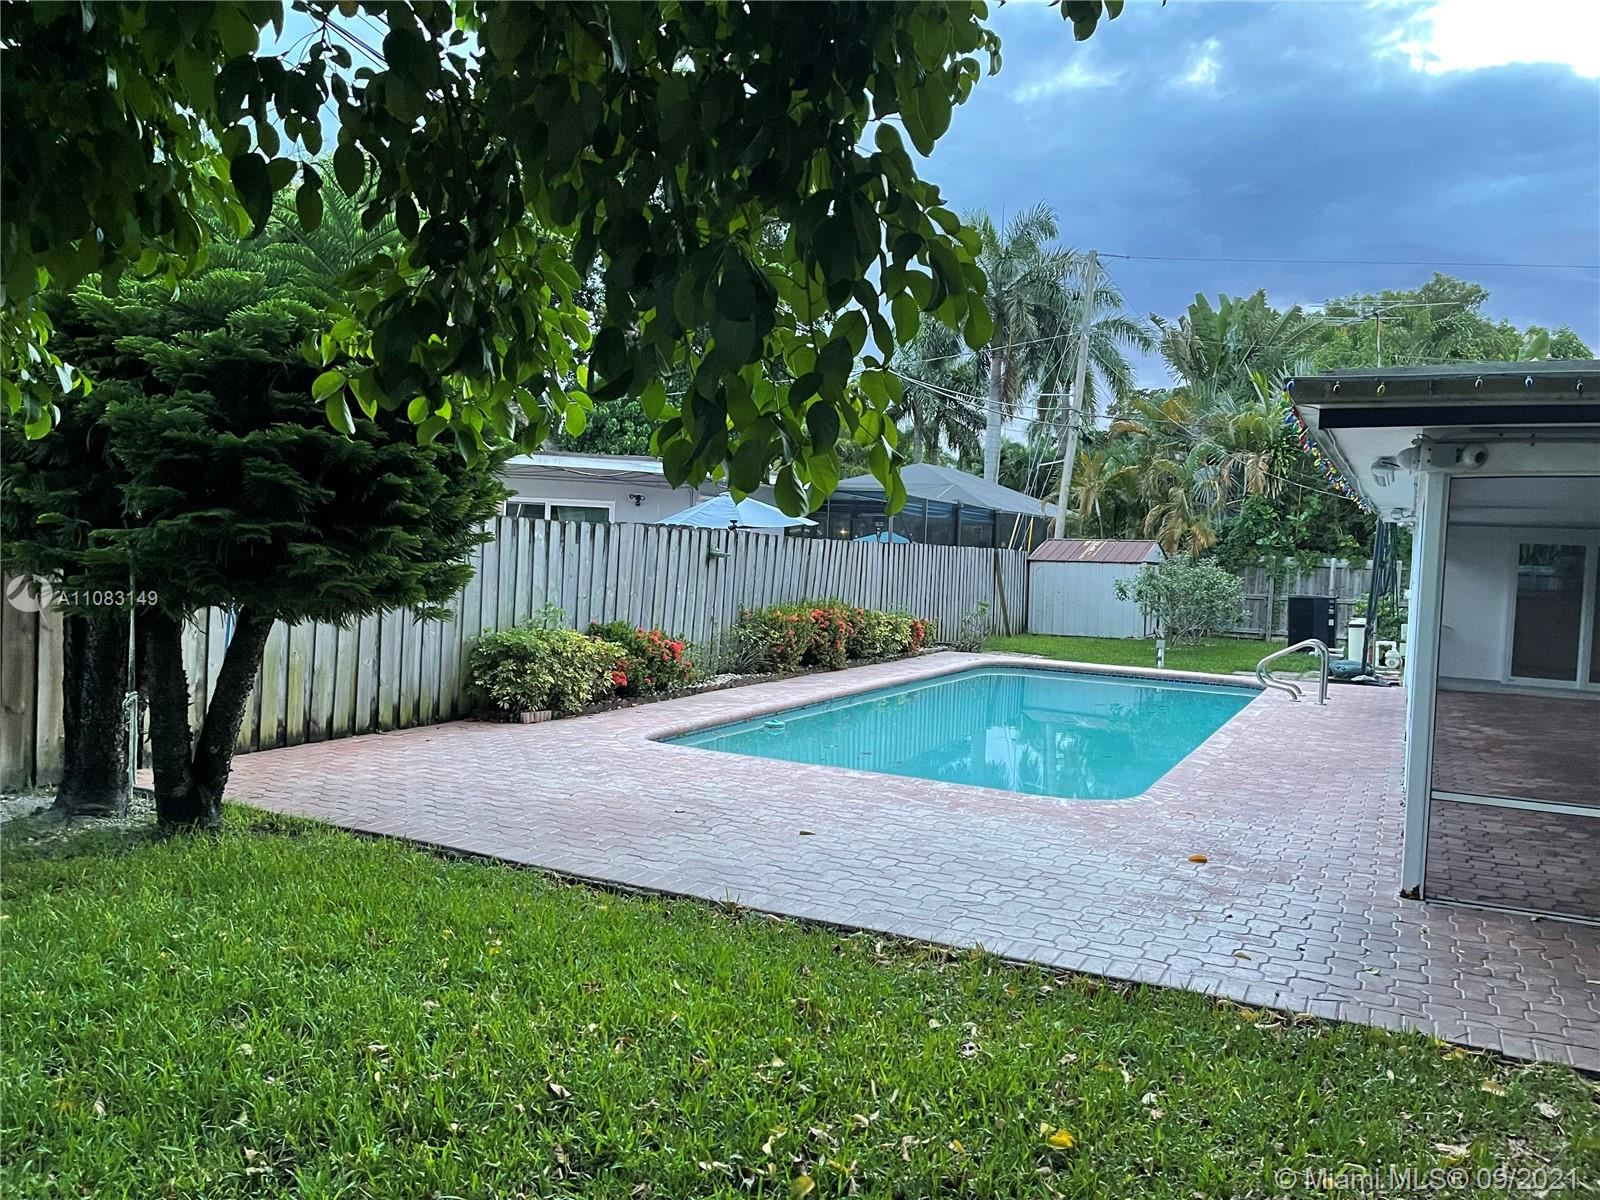 Photo of 600 NW 22nd Ct, Wilton Manors, FL 33311 (MLS # A11083149)